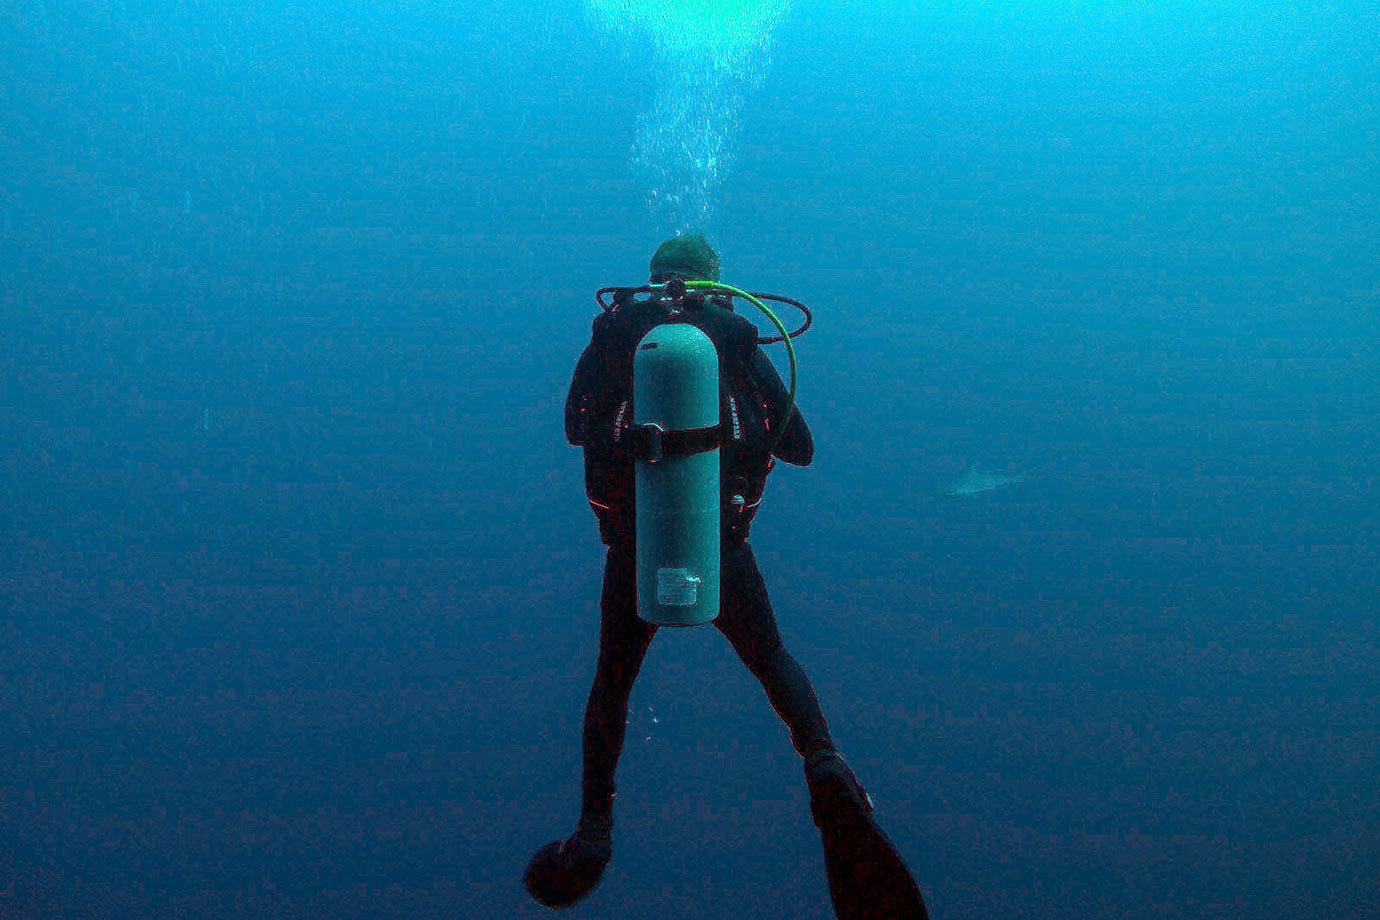 Diving enthusiasts flock to the Blue Hole